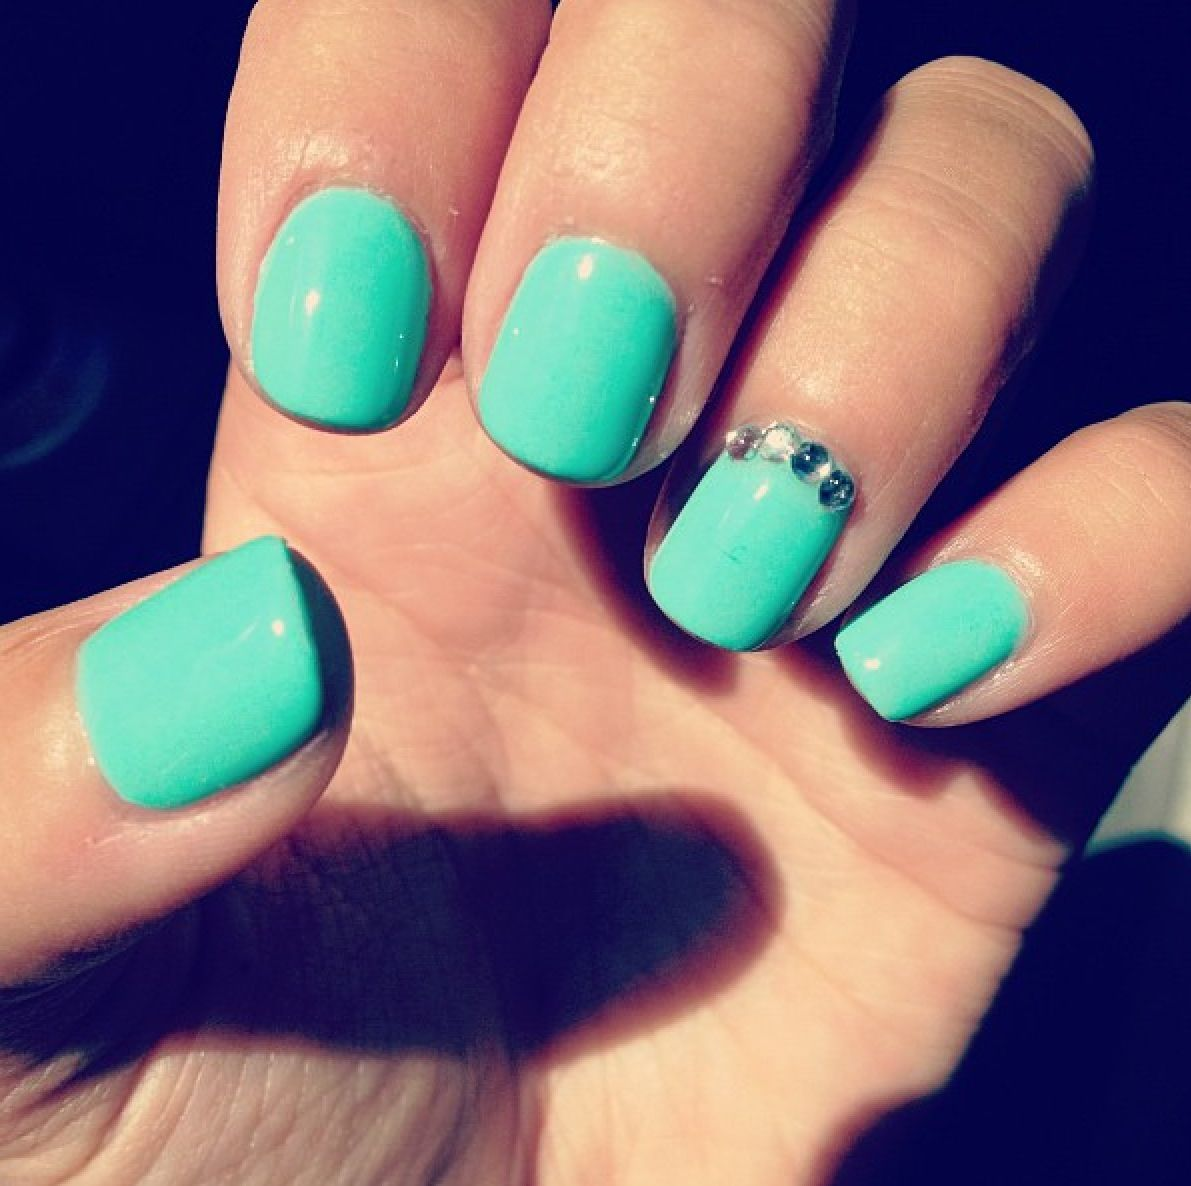 Turquoise and diamond nails